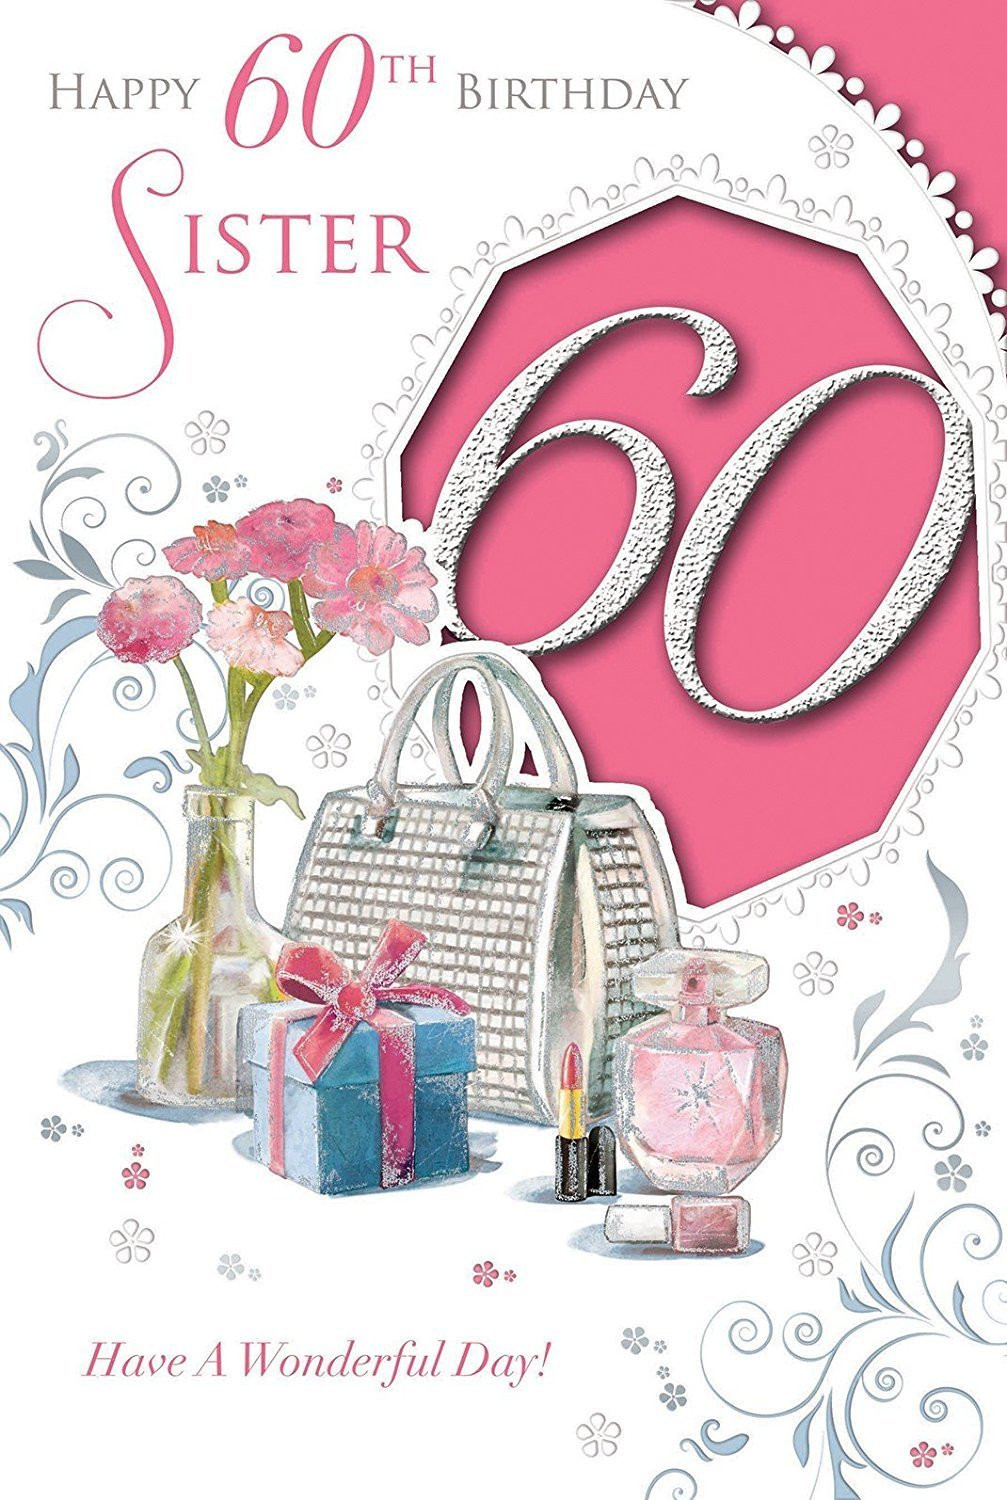 birthday card store near me ; discount-greeting-card-stores-near-me-new-amazon-sister-60-today-age-60th-morden-style-birthday-of-discount-greeting-card-stores-near-me